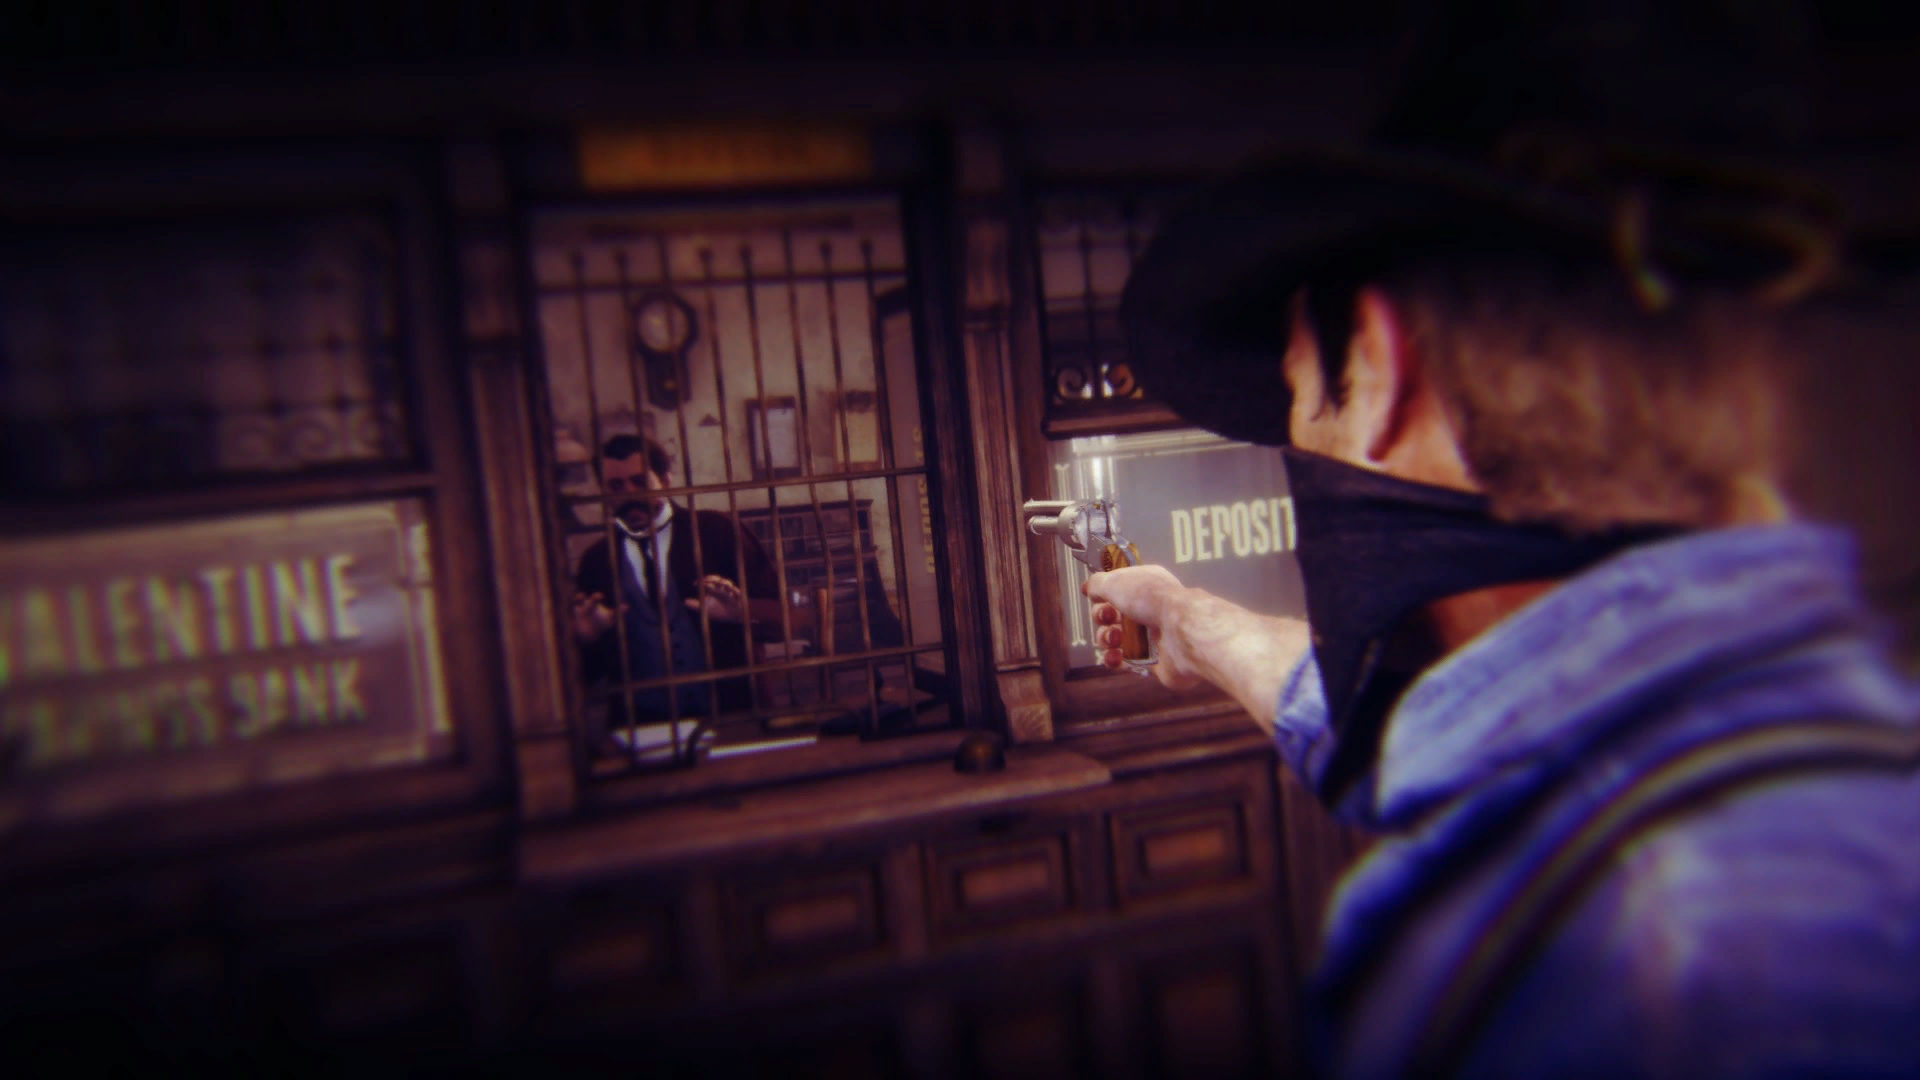 A new Red Dead Redemption 2 mod allows you to rob banks continuously screenshot